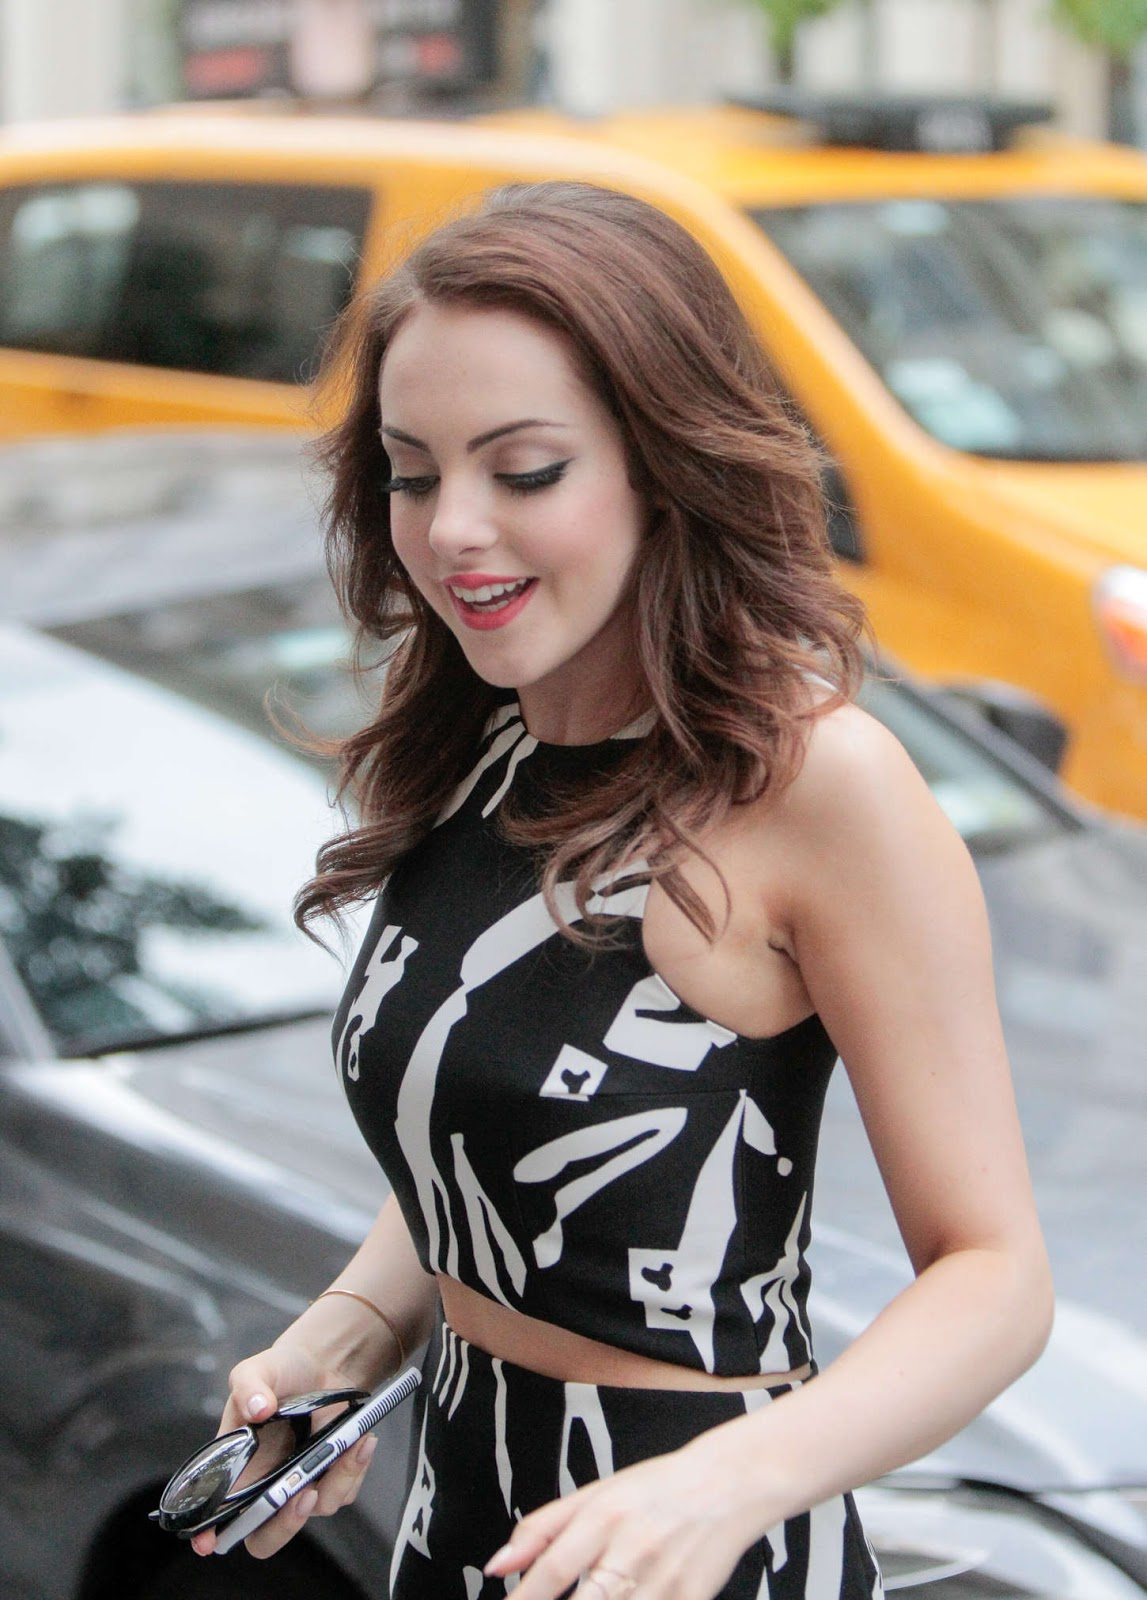 Indian girls villa elizabeth gillies huffpost live for Where do models live in nyc